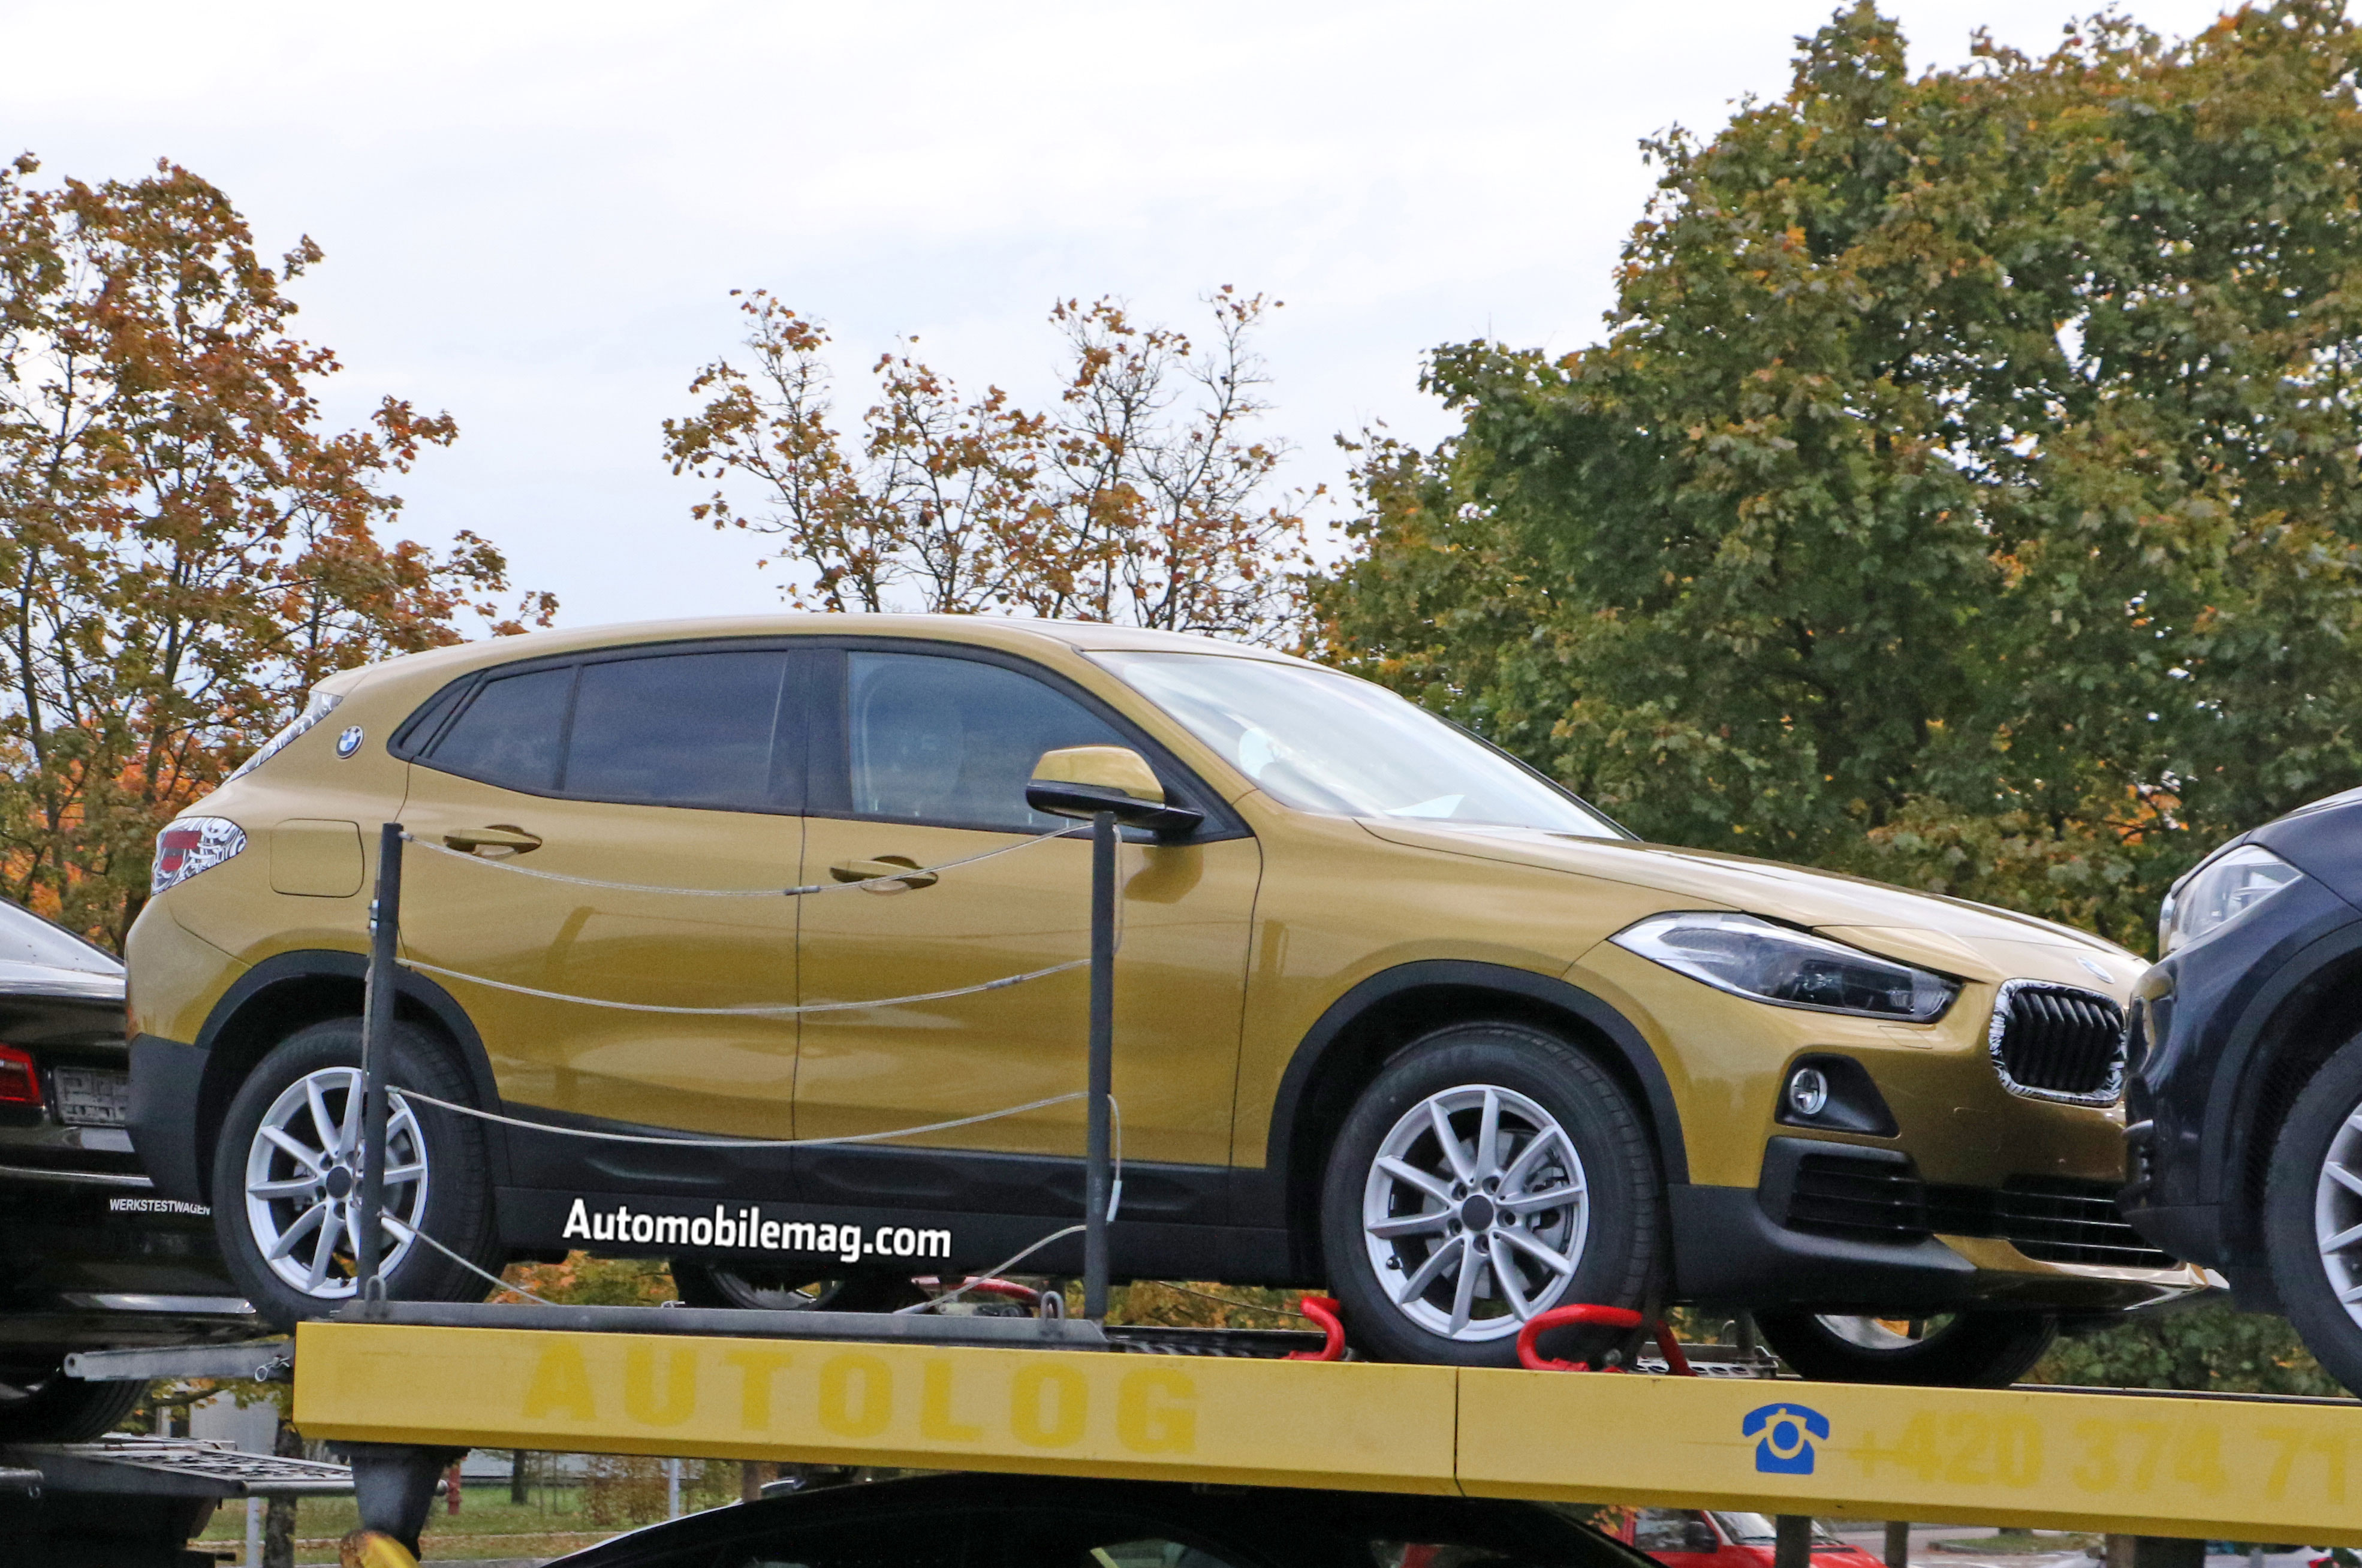 bmw x2 caught naked on a flatbed automobile magazine. Black Bedroom Furniture Sets. Home Design Ideas